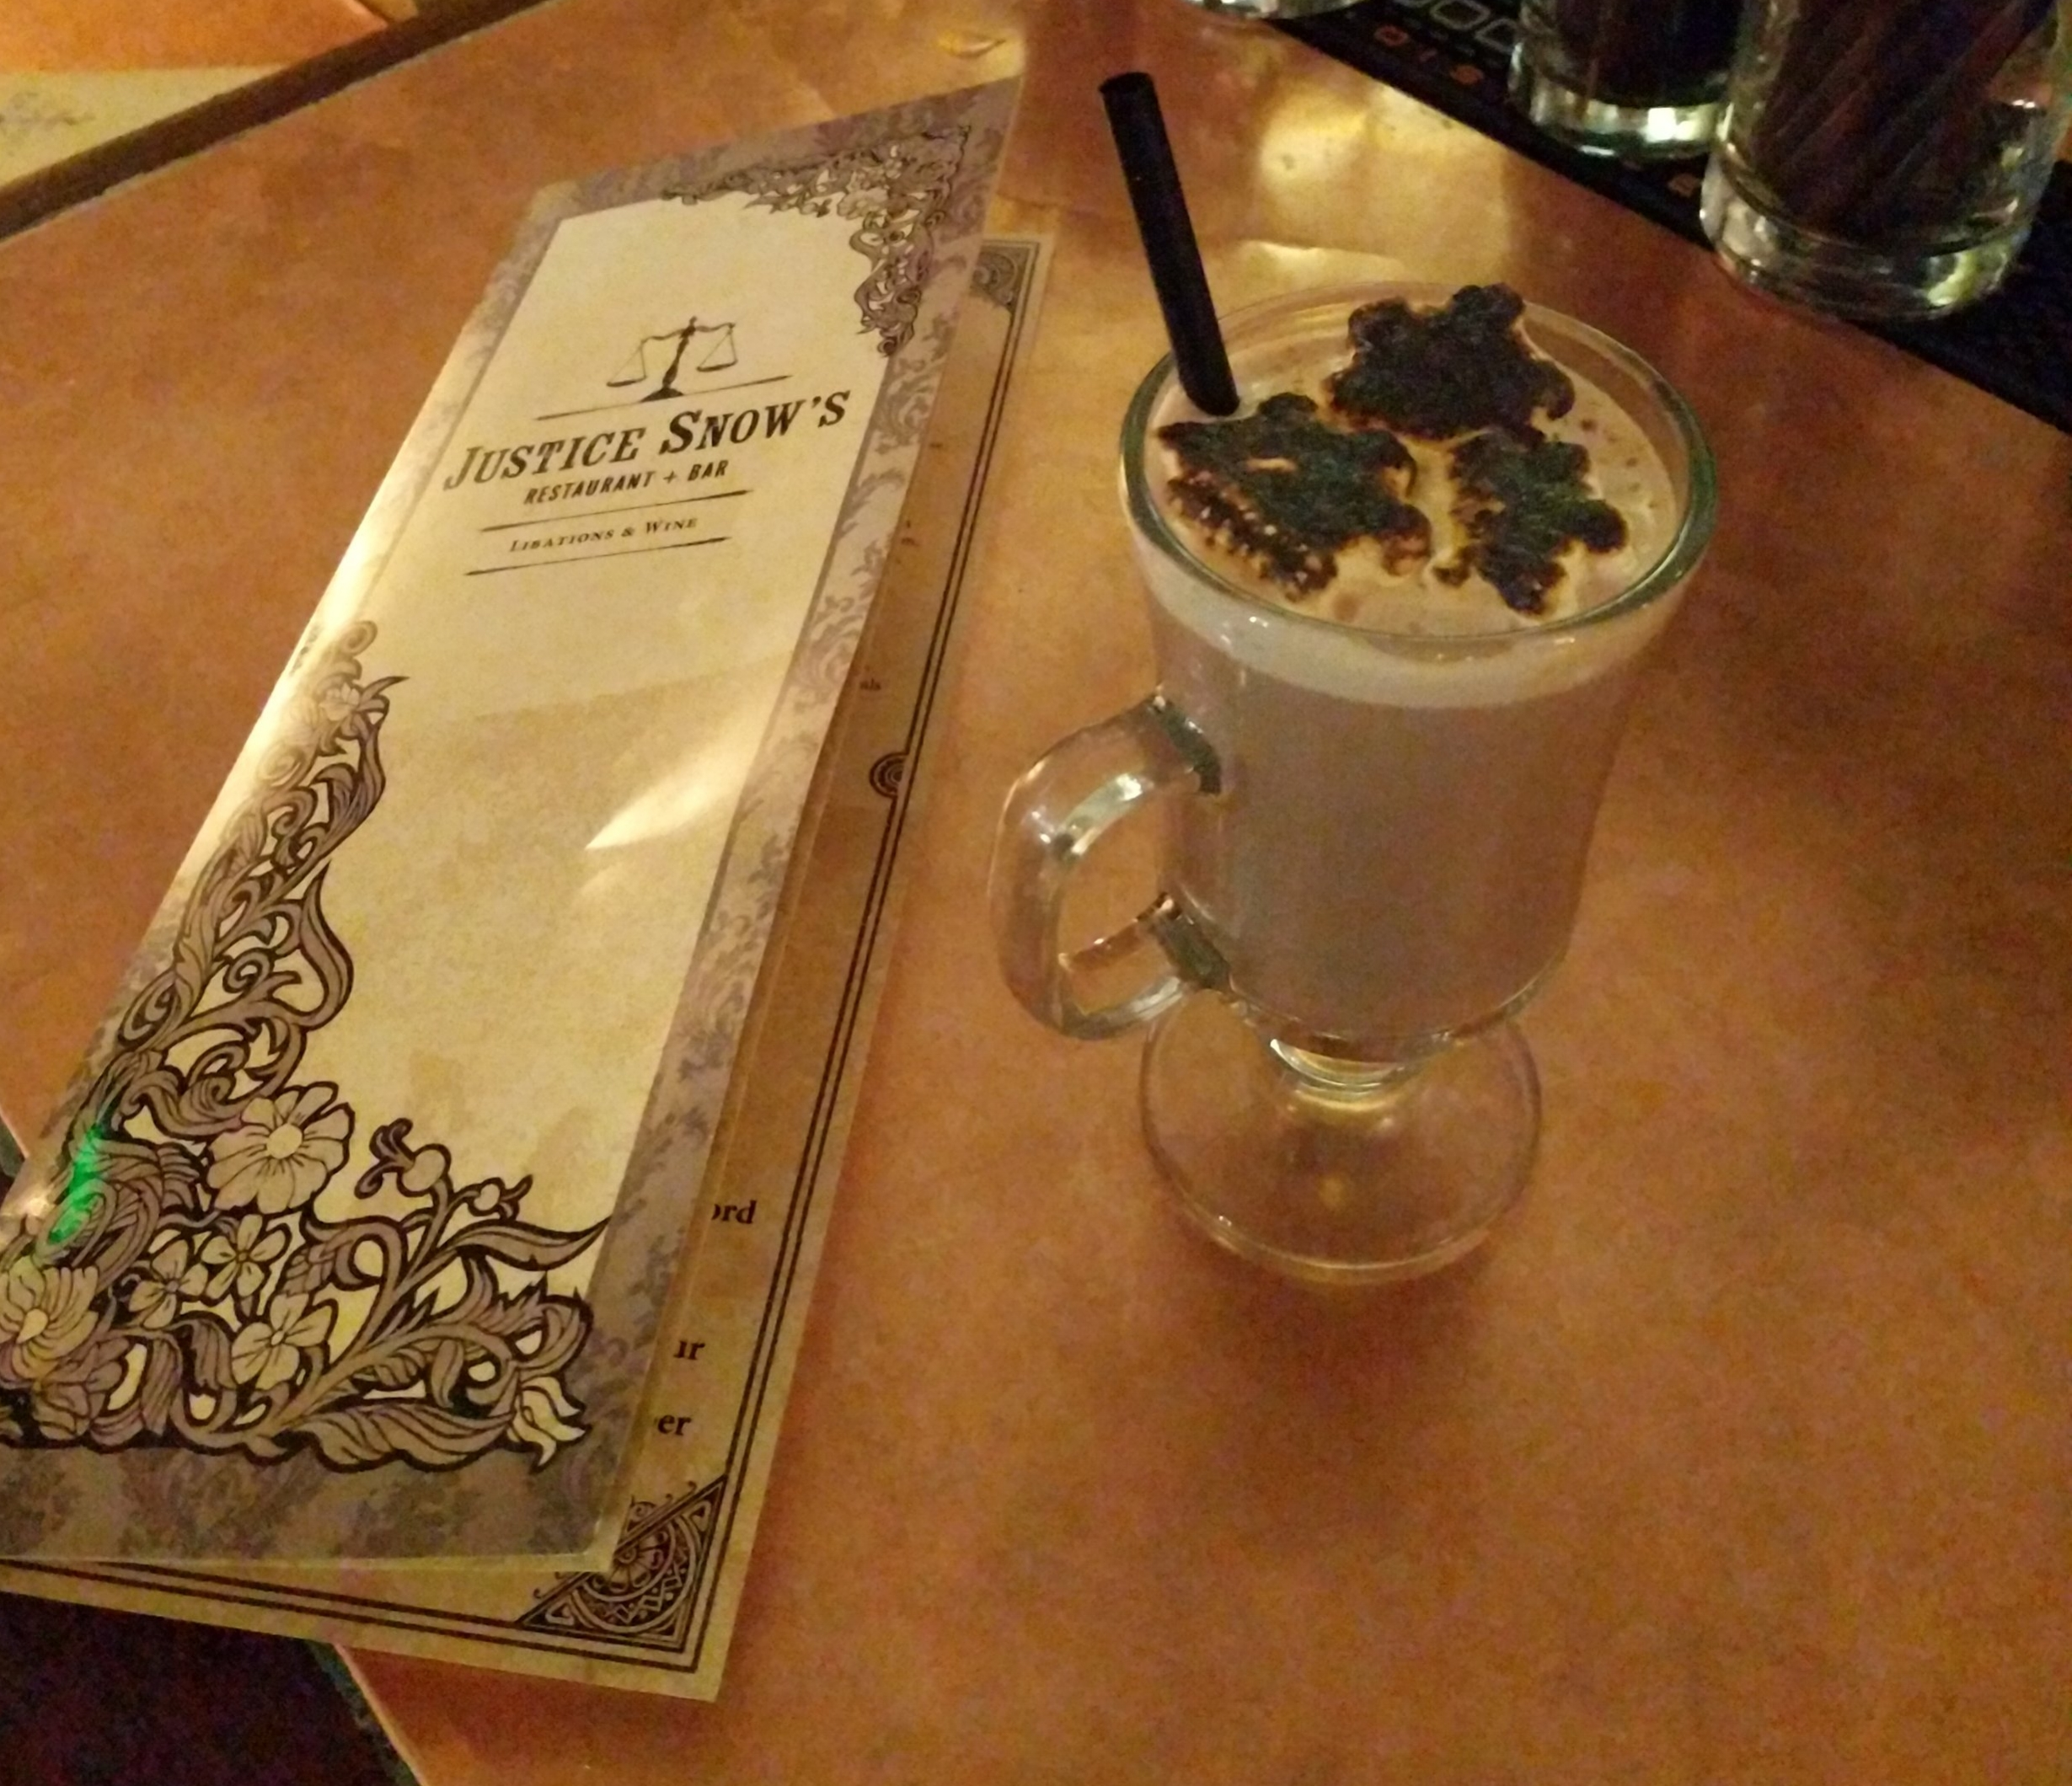 Boozy Hot Chocolate from Justice Snow's cocktail bar.